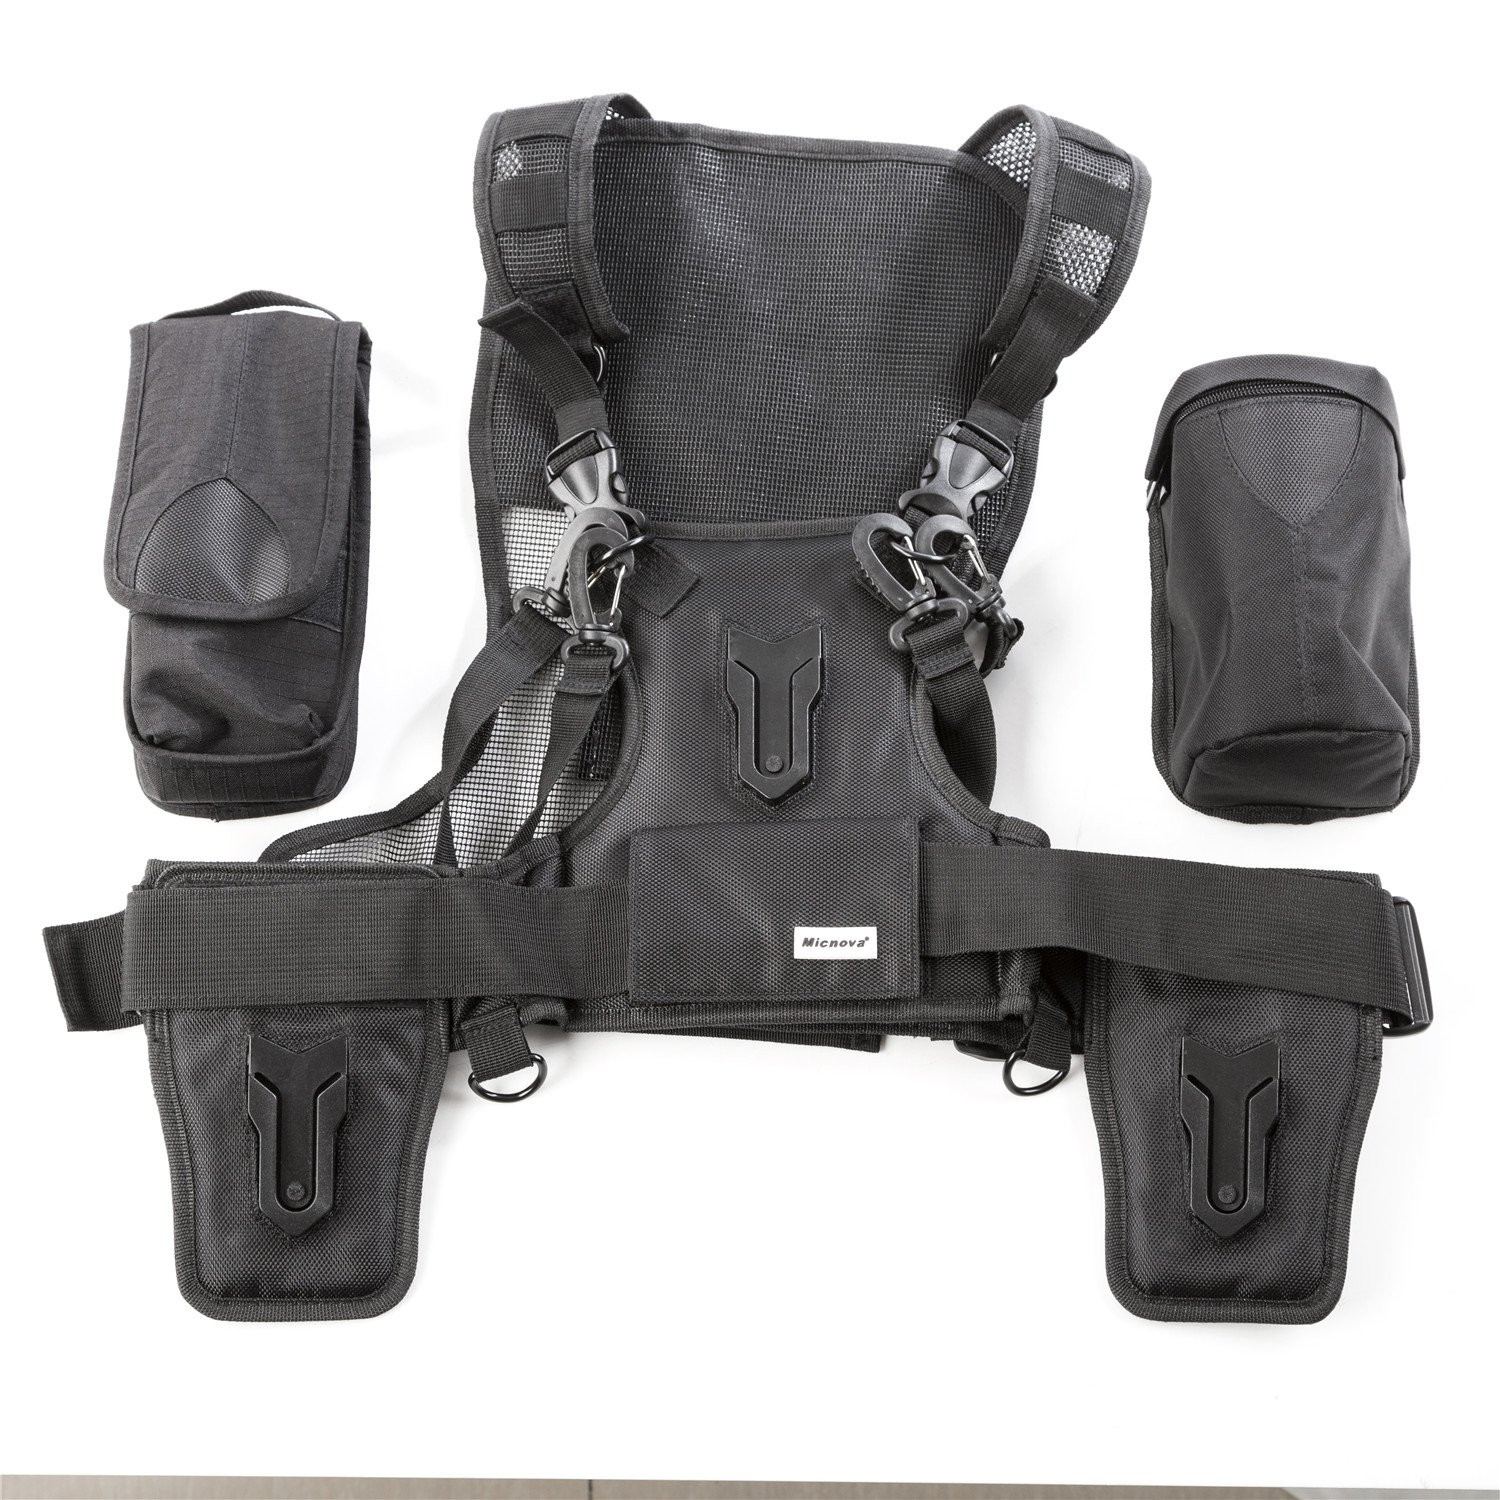 Micnova MQ-MSP07 Pro Triple Camera Carrying Chest Harness System Vest with Side Holster for Canon Nikon Sony DV DSLR Cameras Panasonic Olympus Camcorder